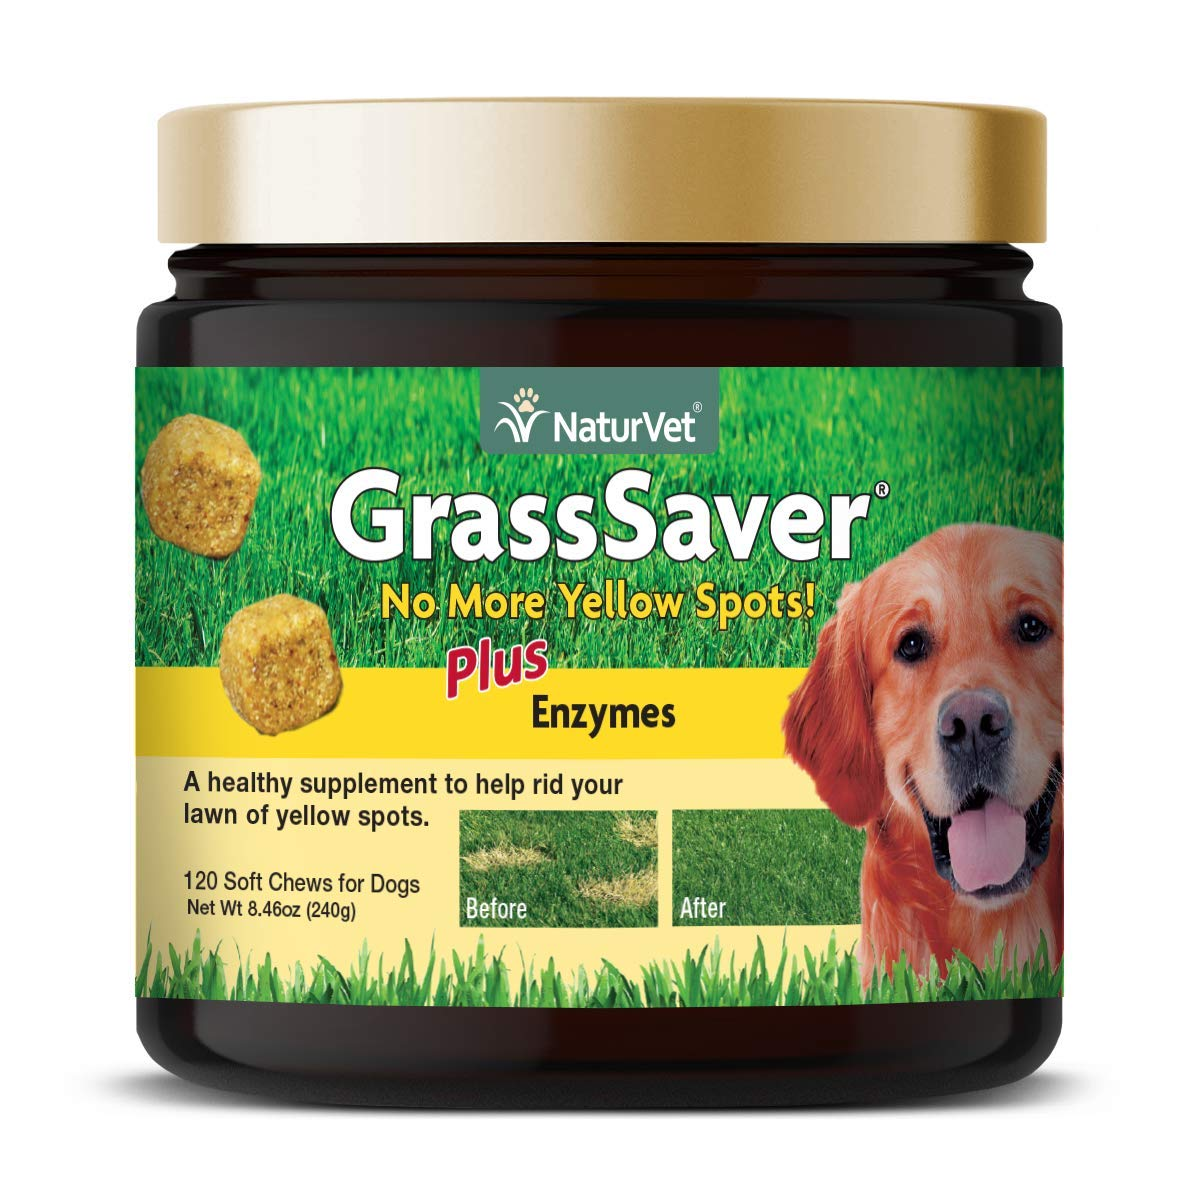 NaturVet - GrassSaver Supplement for Dogs - Healthy Supplement to Help Rid Your Lawn of Yellow Spots - Synergistic Combination of B-Complex Vitamins & Amino Acids - 120 Soft Chews by NaturVet